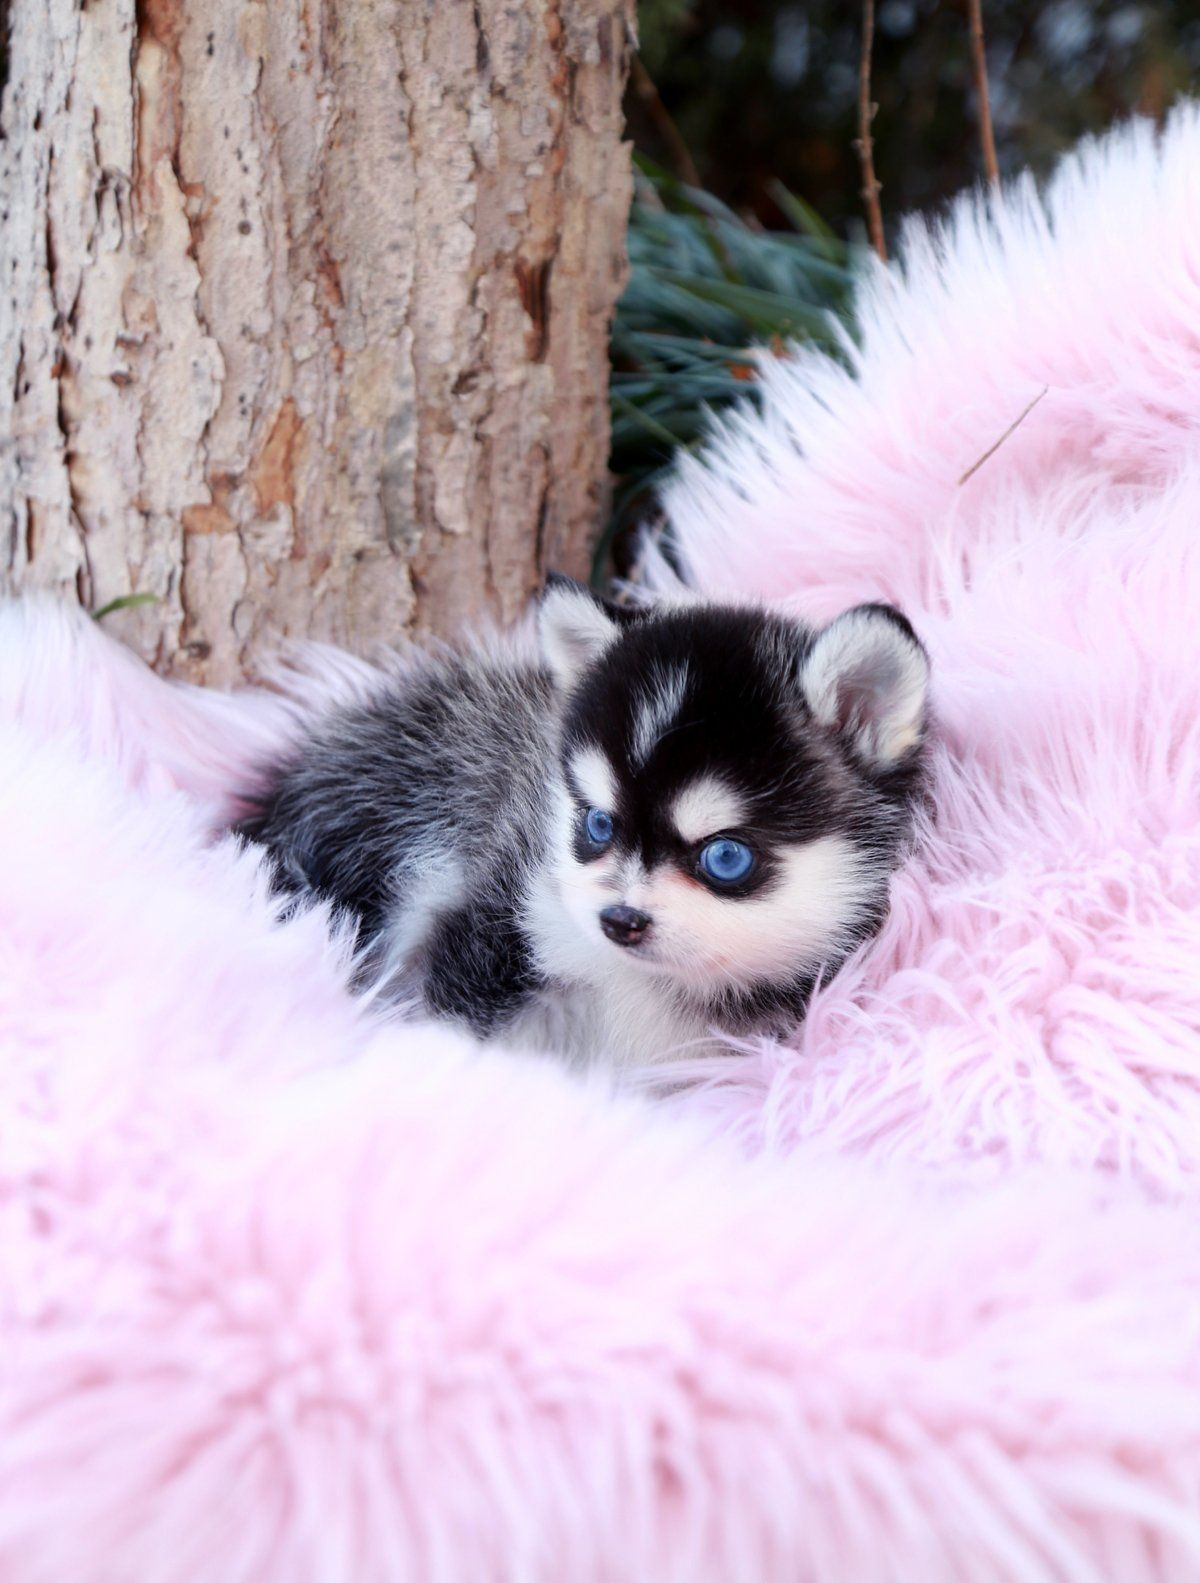 Teacup Puppies For Sale Teacup Puppy Miniature Toy Dogs Foufou Puppies In 2020 Pomsky Puppies Teacup Puppies Really Cute Puppies